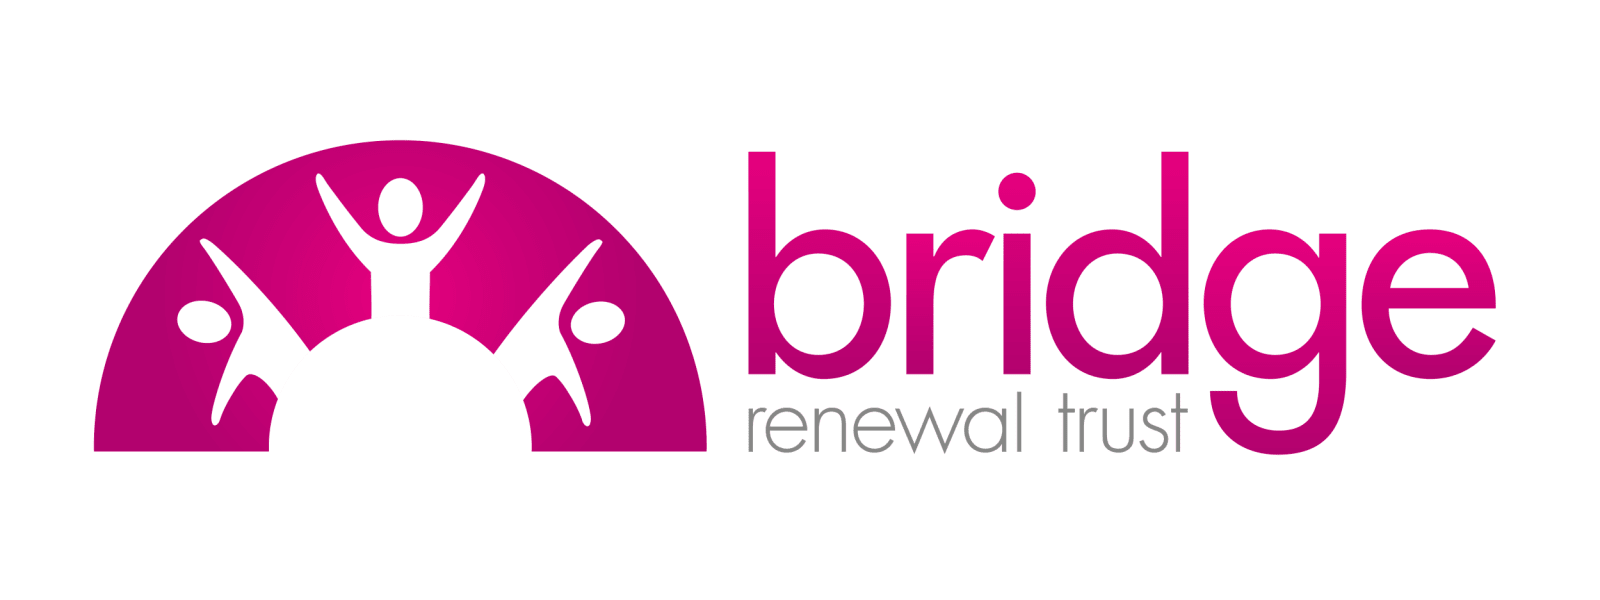 The Bridge Renewal Trust response to COVID-19